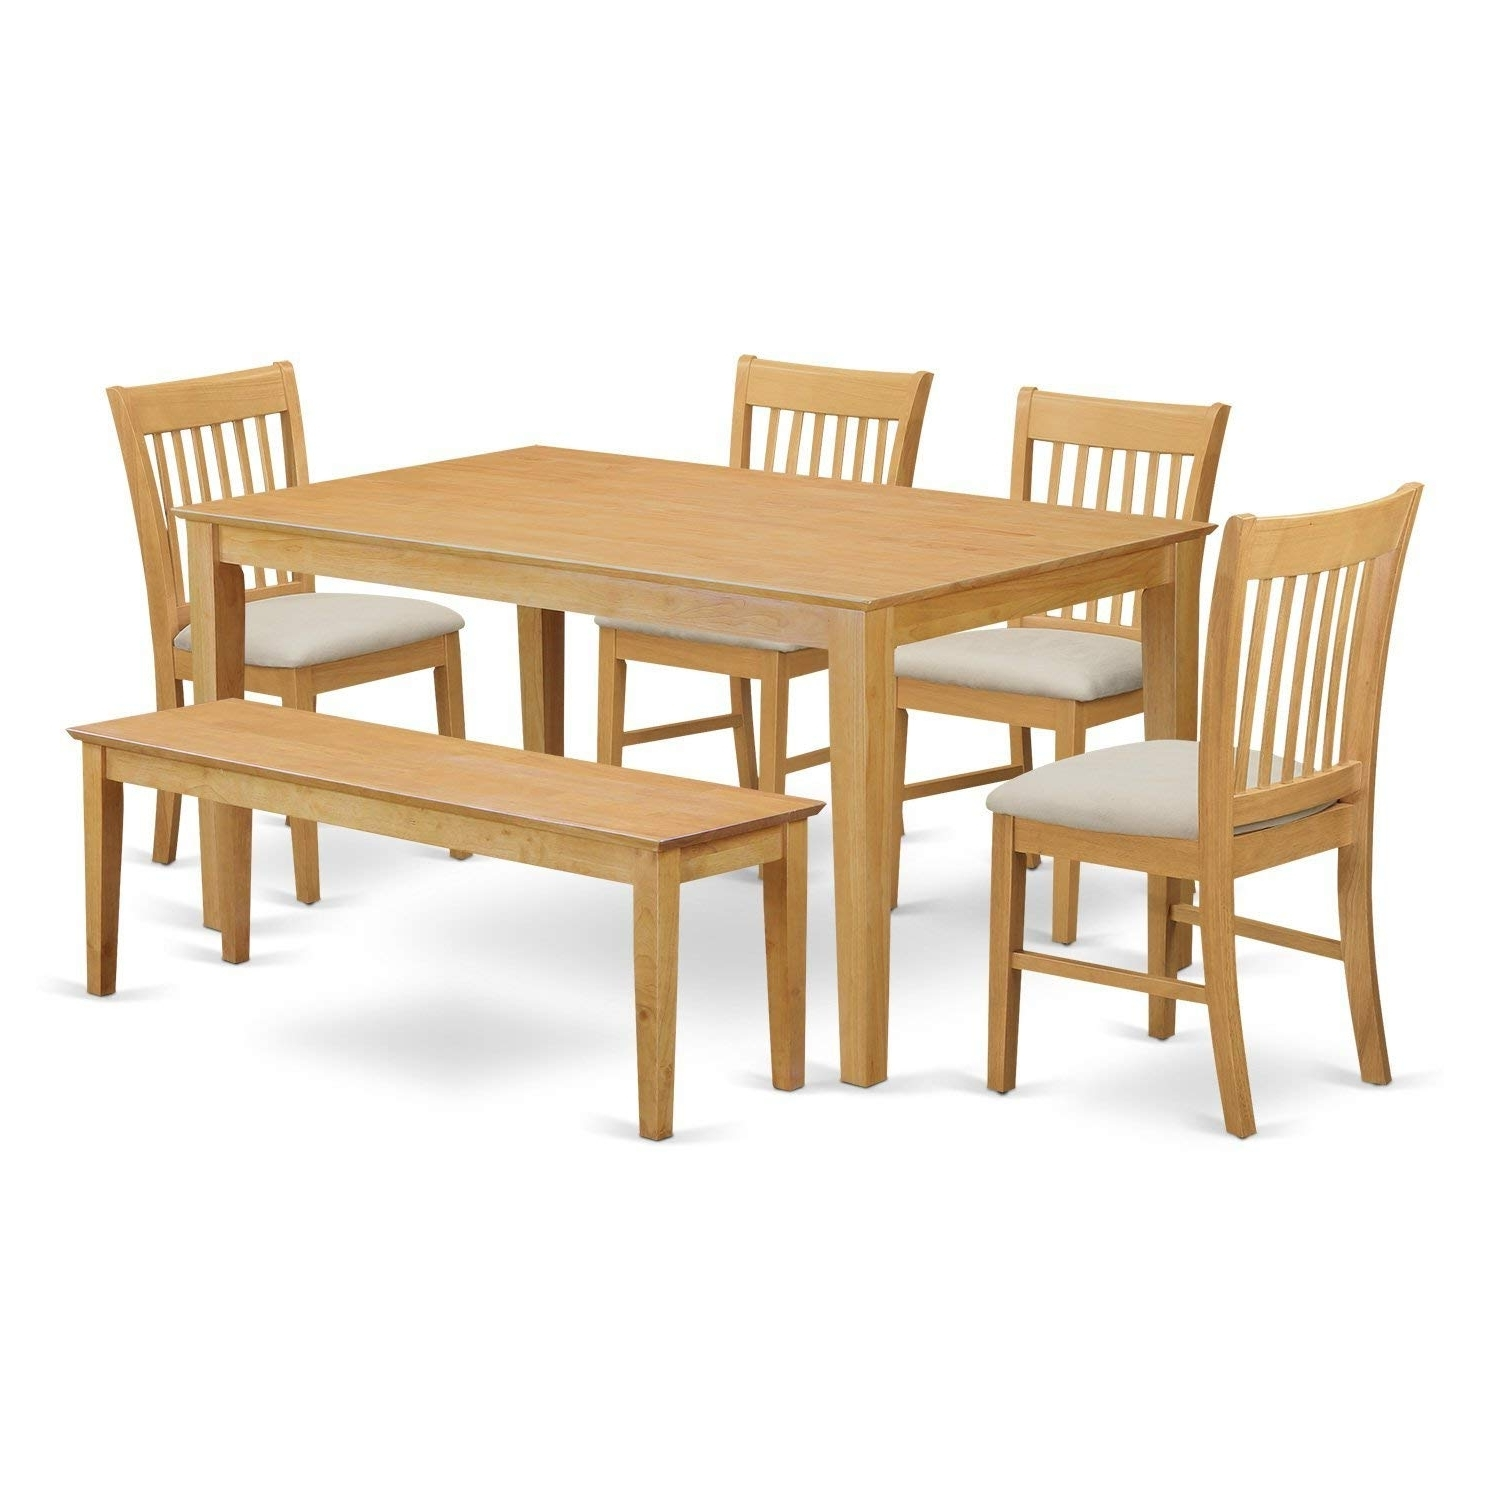 Fashionable Craftsman 5 Piece Round Dining Sets With Side Chairs Intended For Amazon: East West Furniture Cano6 Oak W 6 Piece Dining Table Set (View 9 of 25)